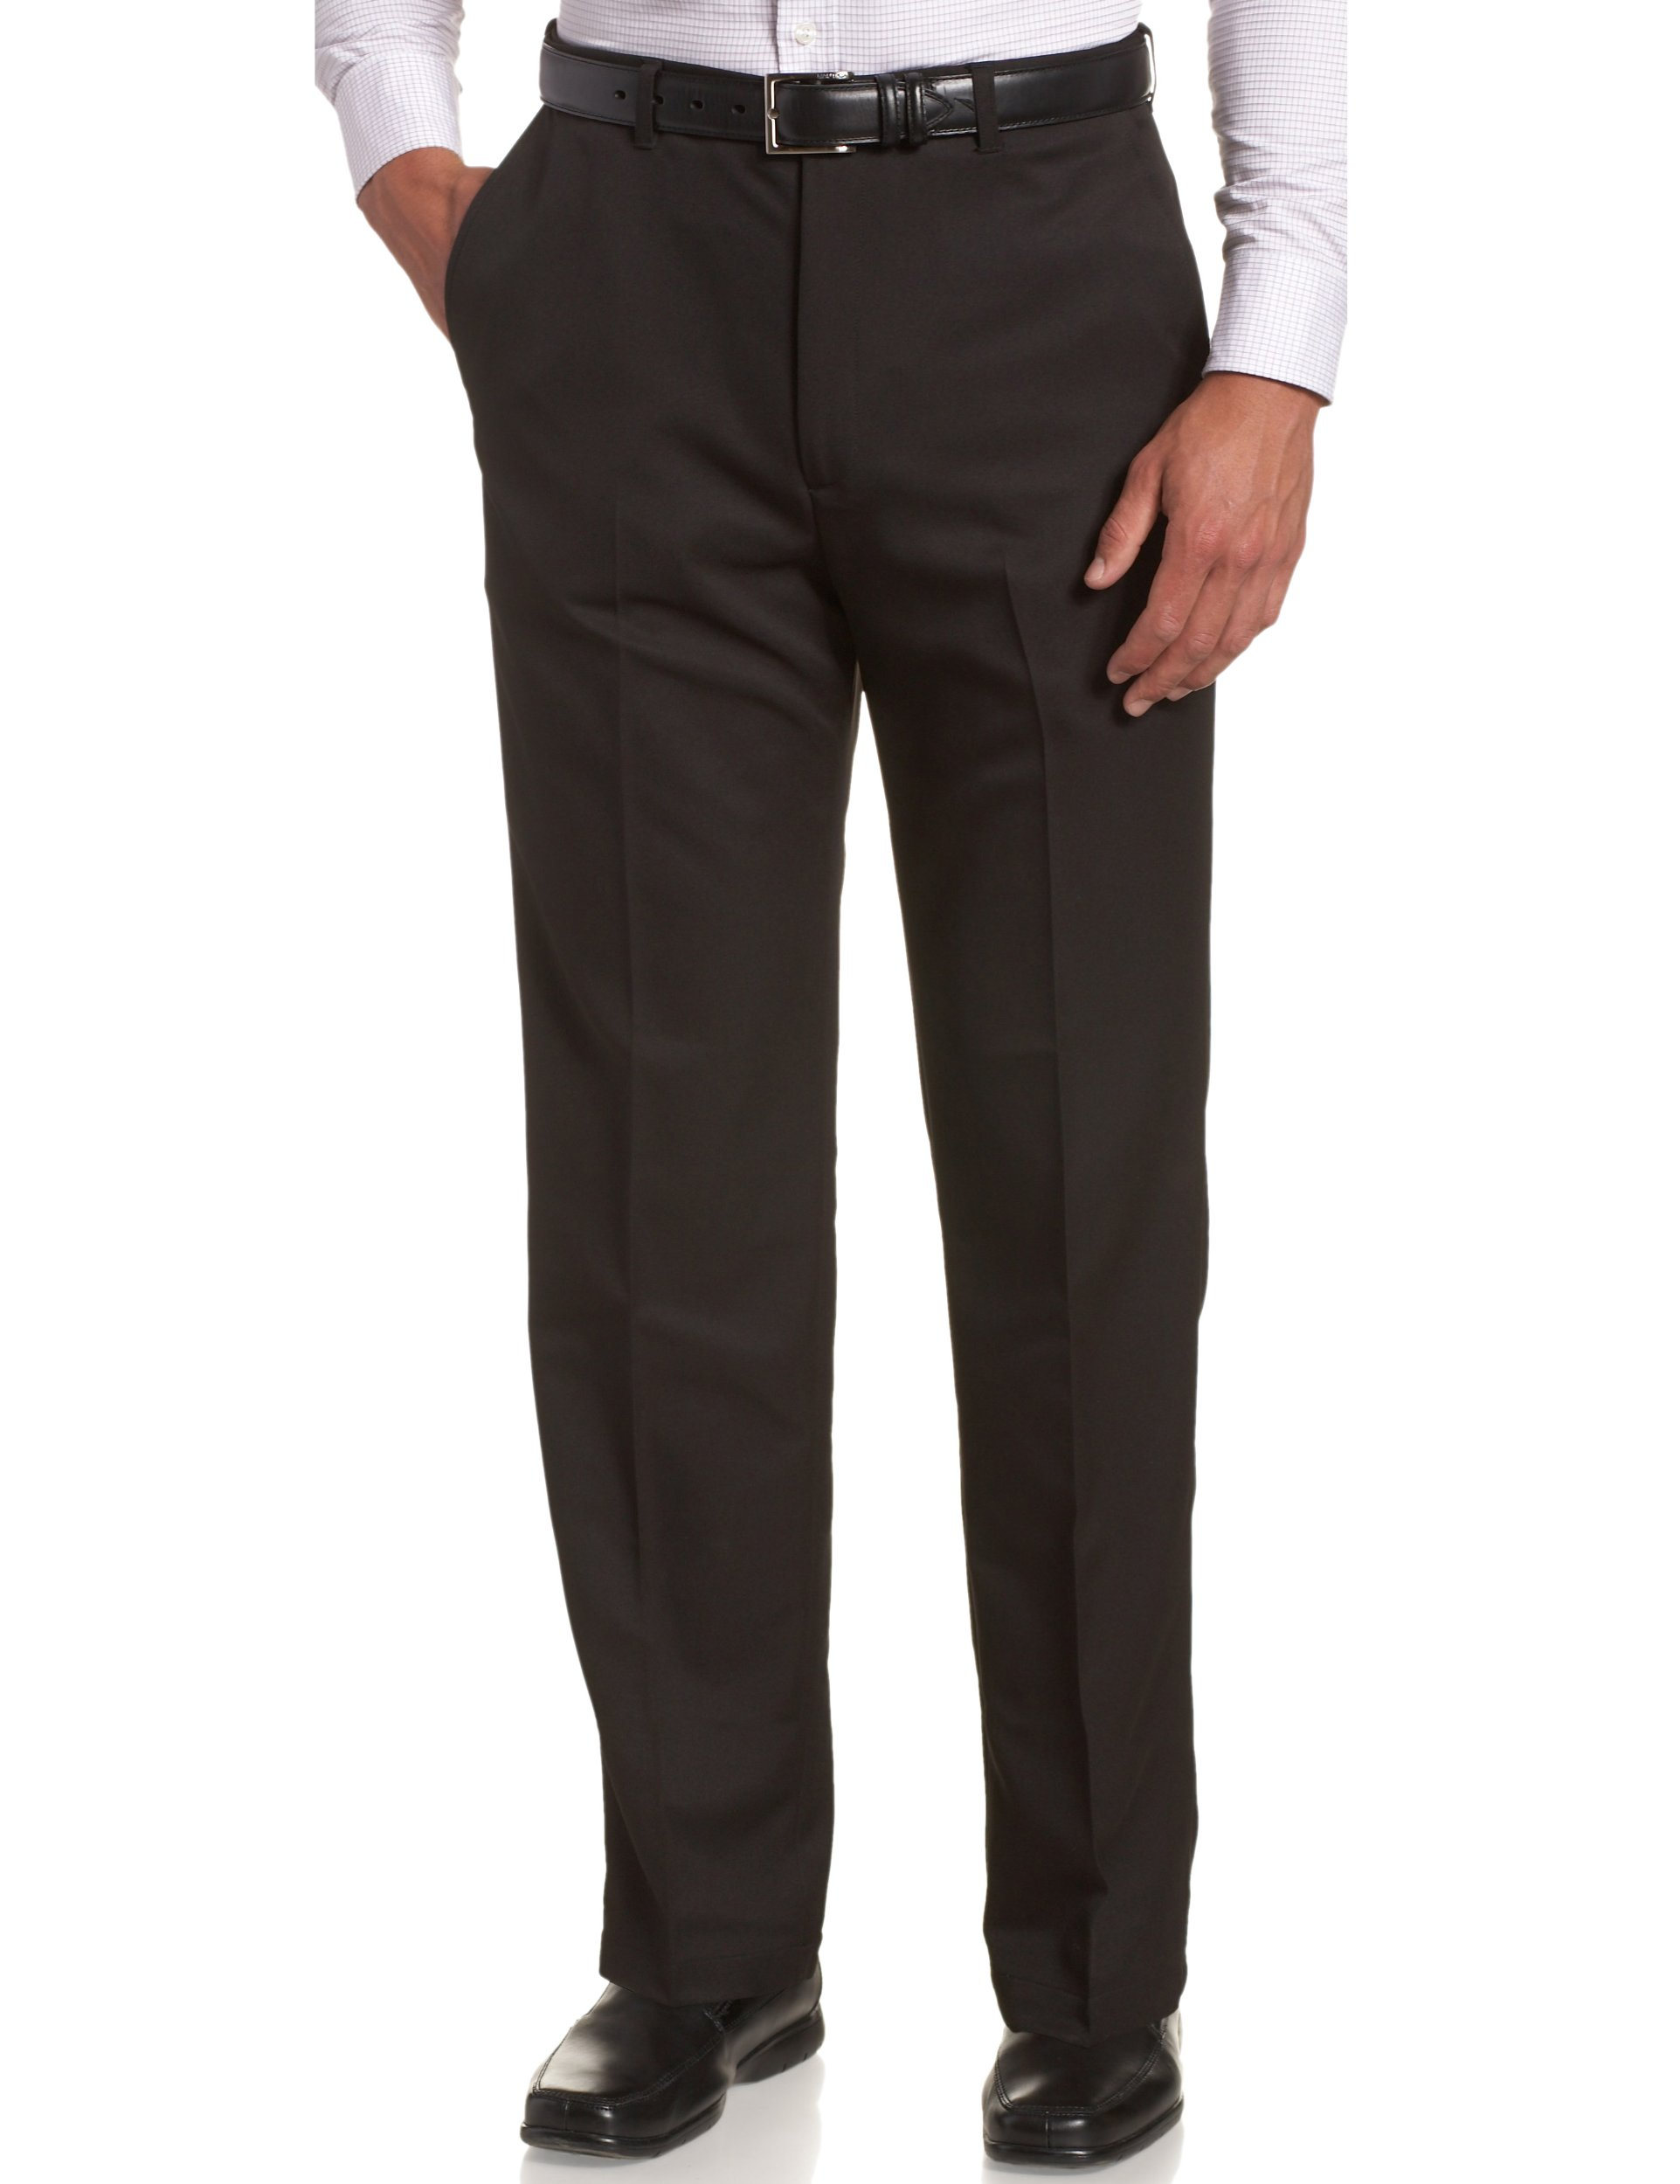 Haggar Men's Cool 18 Hidden Comfort Waist Plain Front Pant,Black,38x29